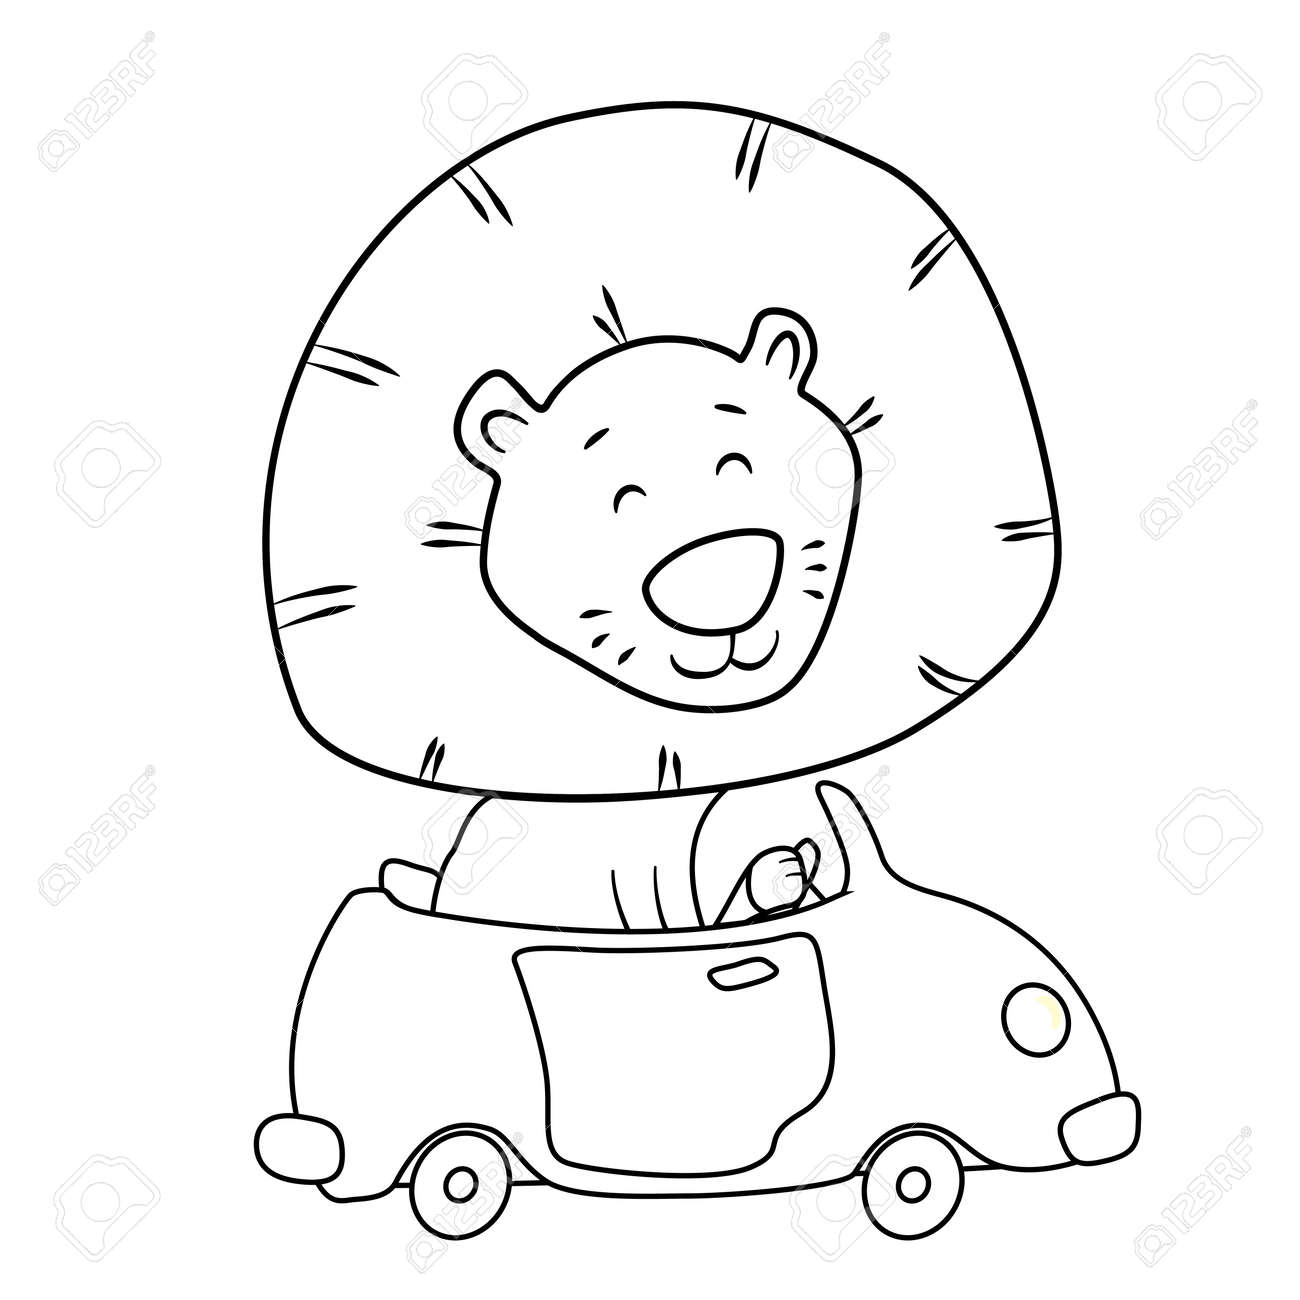 Cute Cartoon Lion Driving A Car Coloring Page For Kids Royalty Free